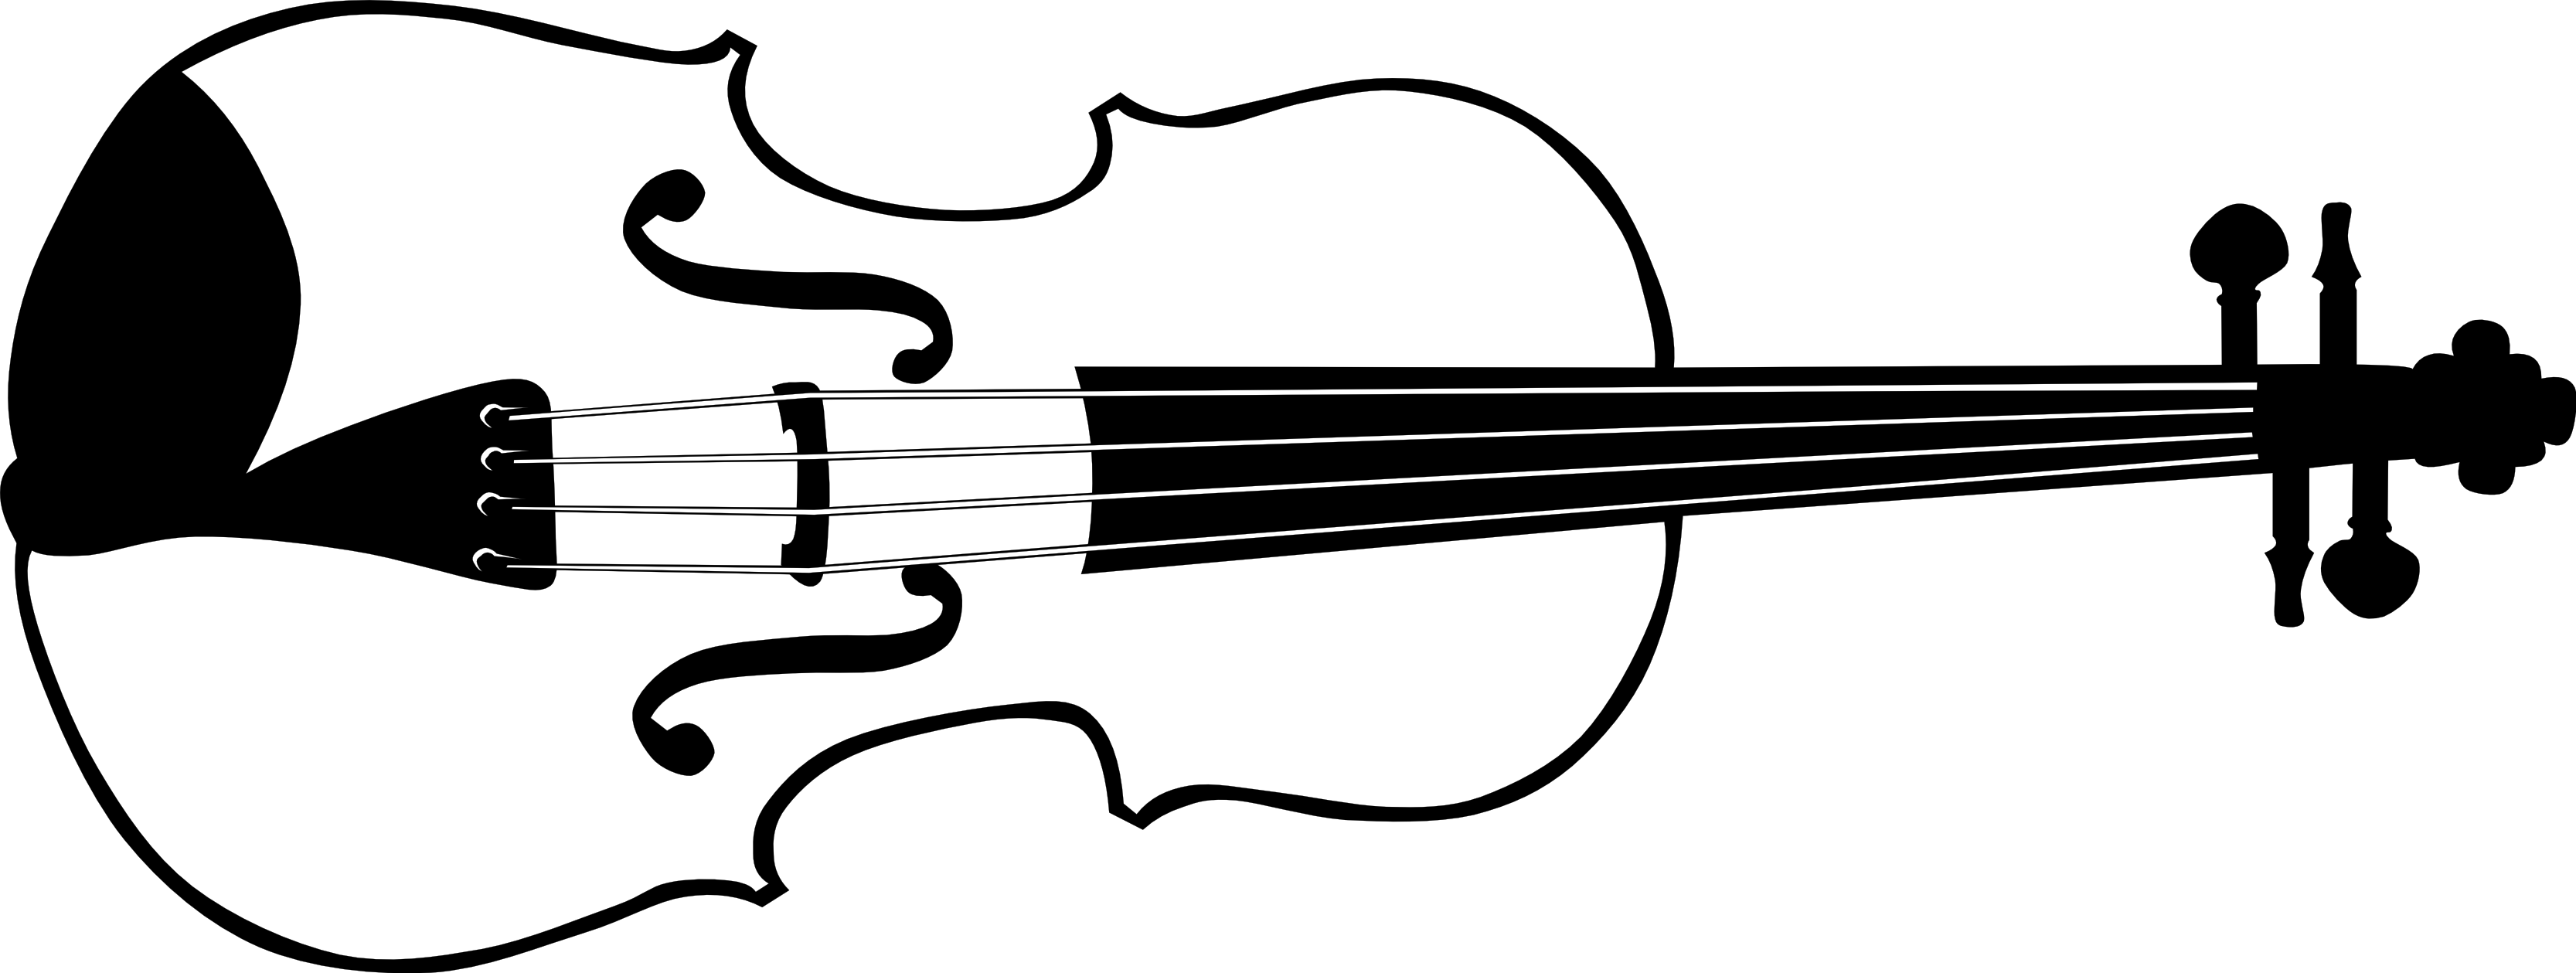 Free Black And White Cello, Download Free Clip Art, Free.